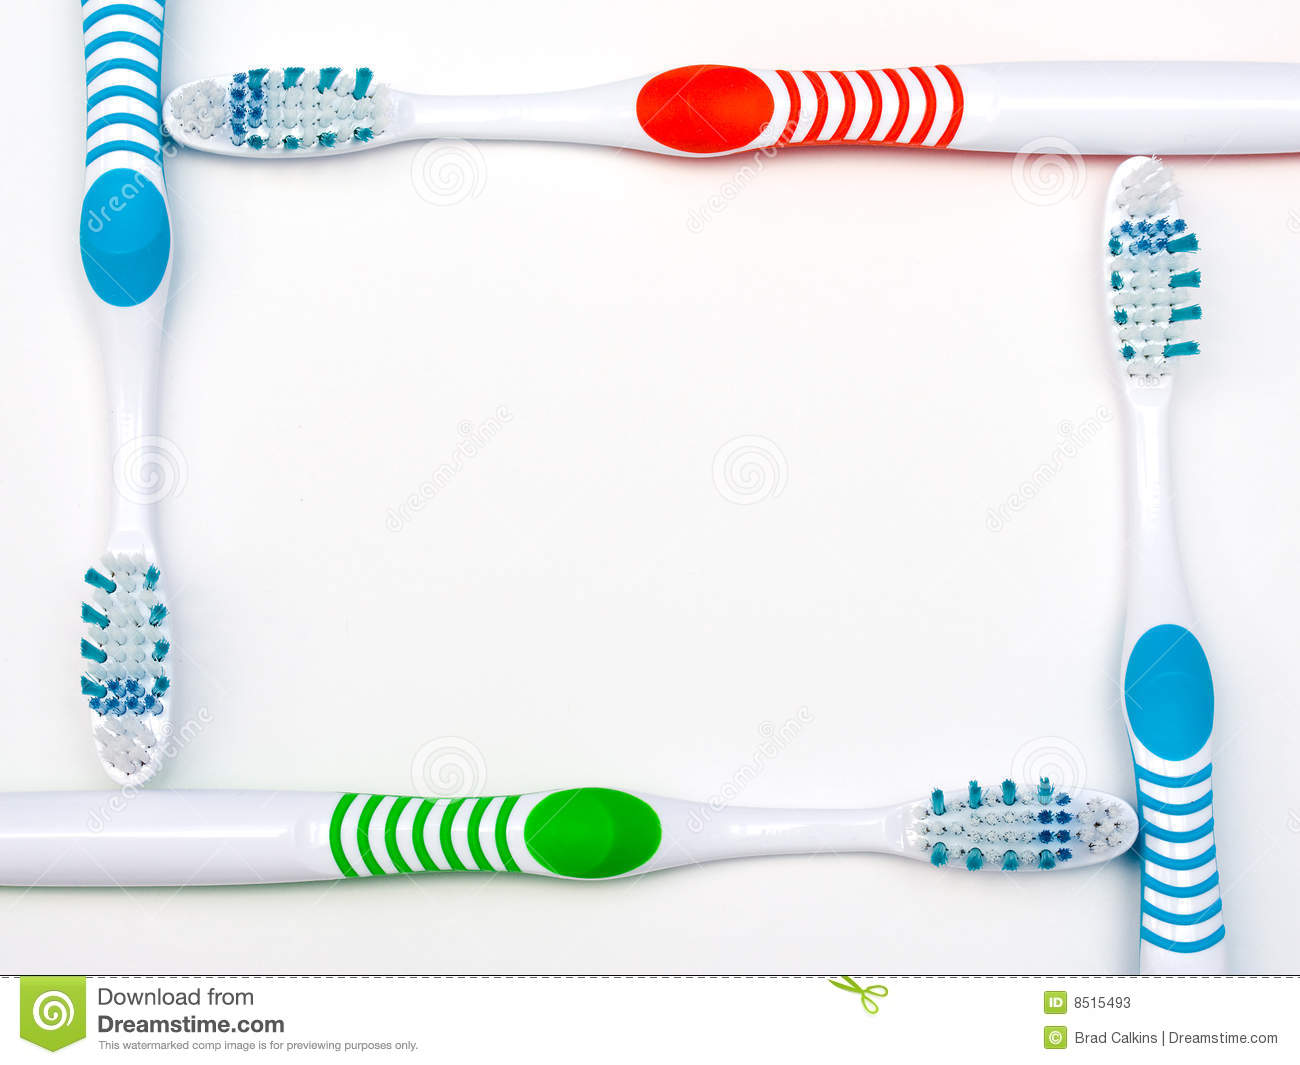 Dental Clipart Borders.